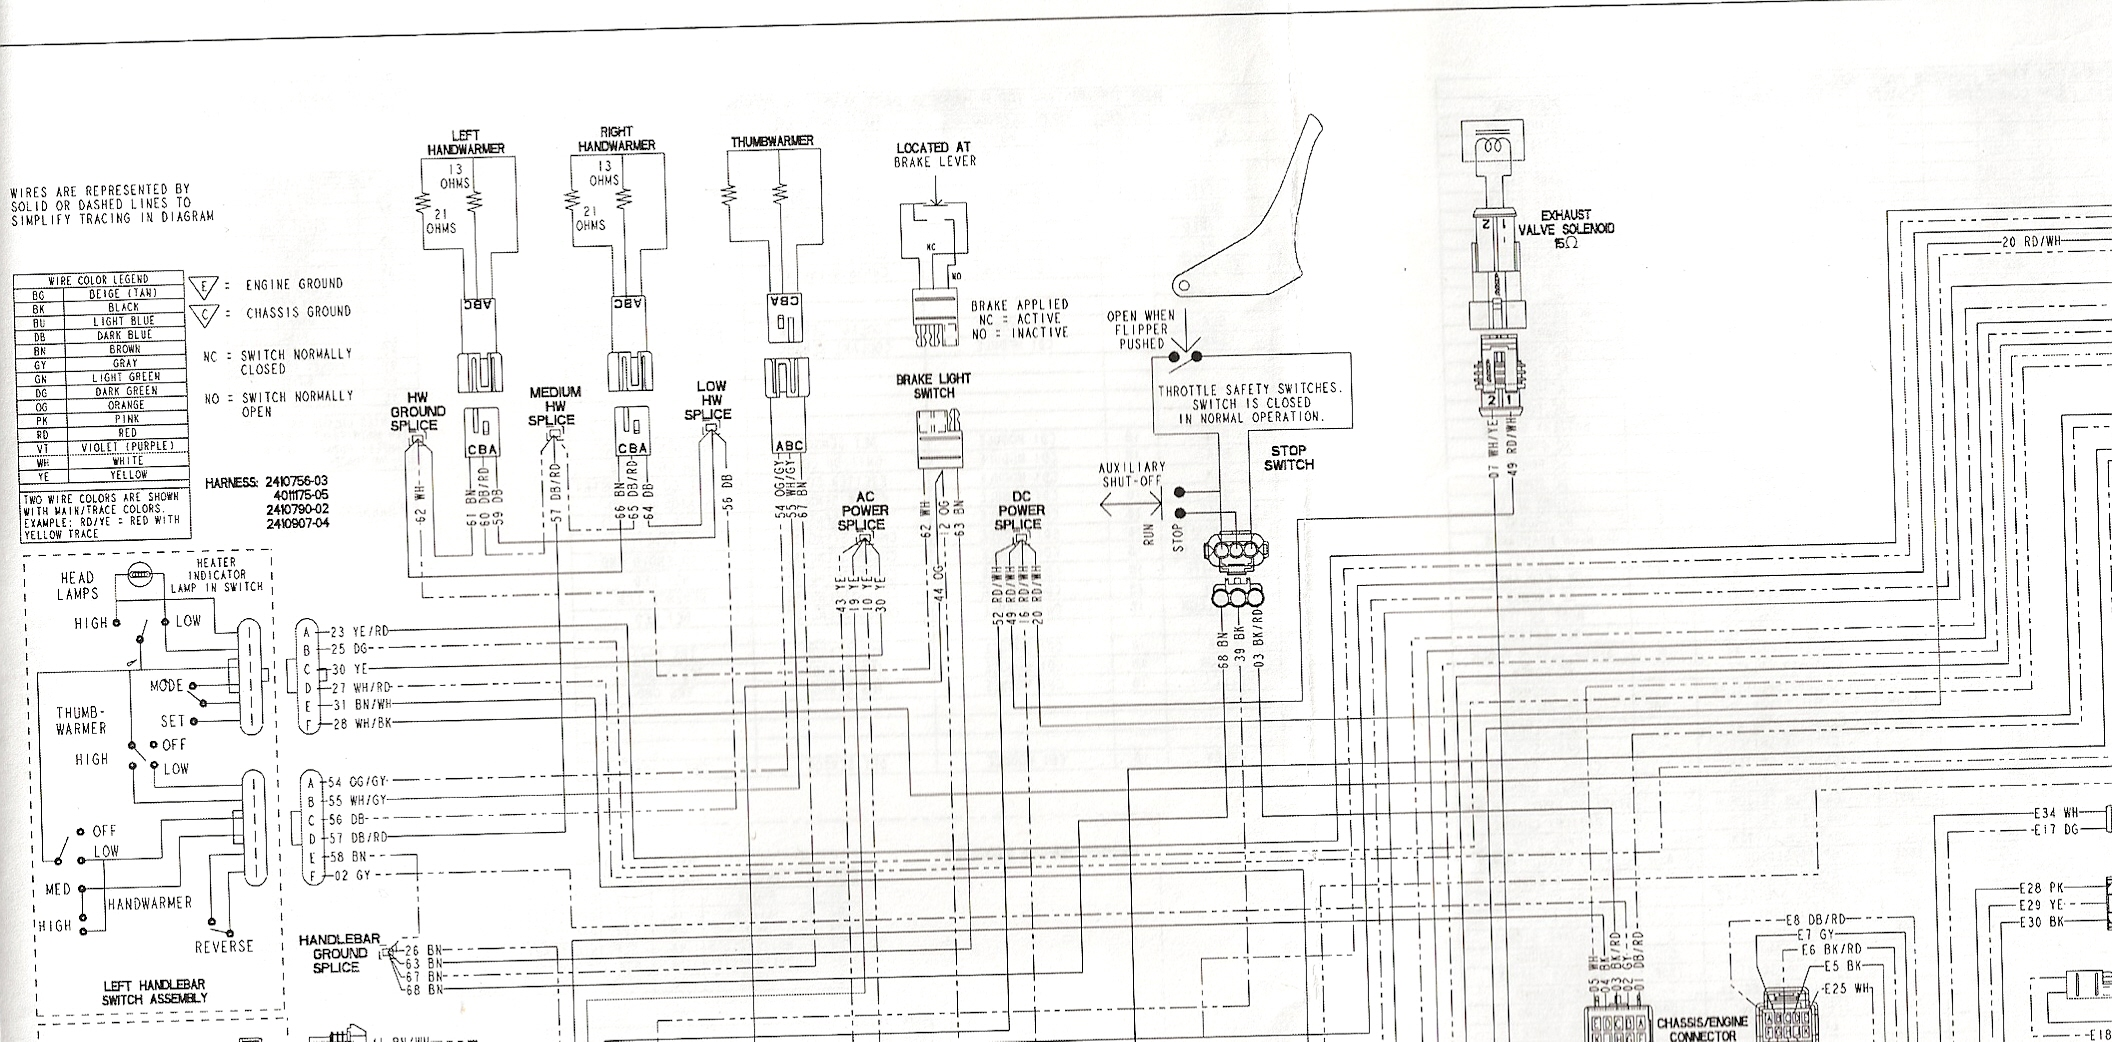 DIAGRAM] 2010 Polaris Rmk 600 Wiring Diagram FULL Version HD Quality Wiring  Diagram - DIAGRAMPAL.CONSERVATOIRE-CHANTERIE.FRdiagrampal.conservatoire-chanterie.fr